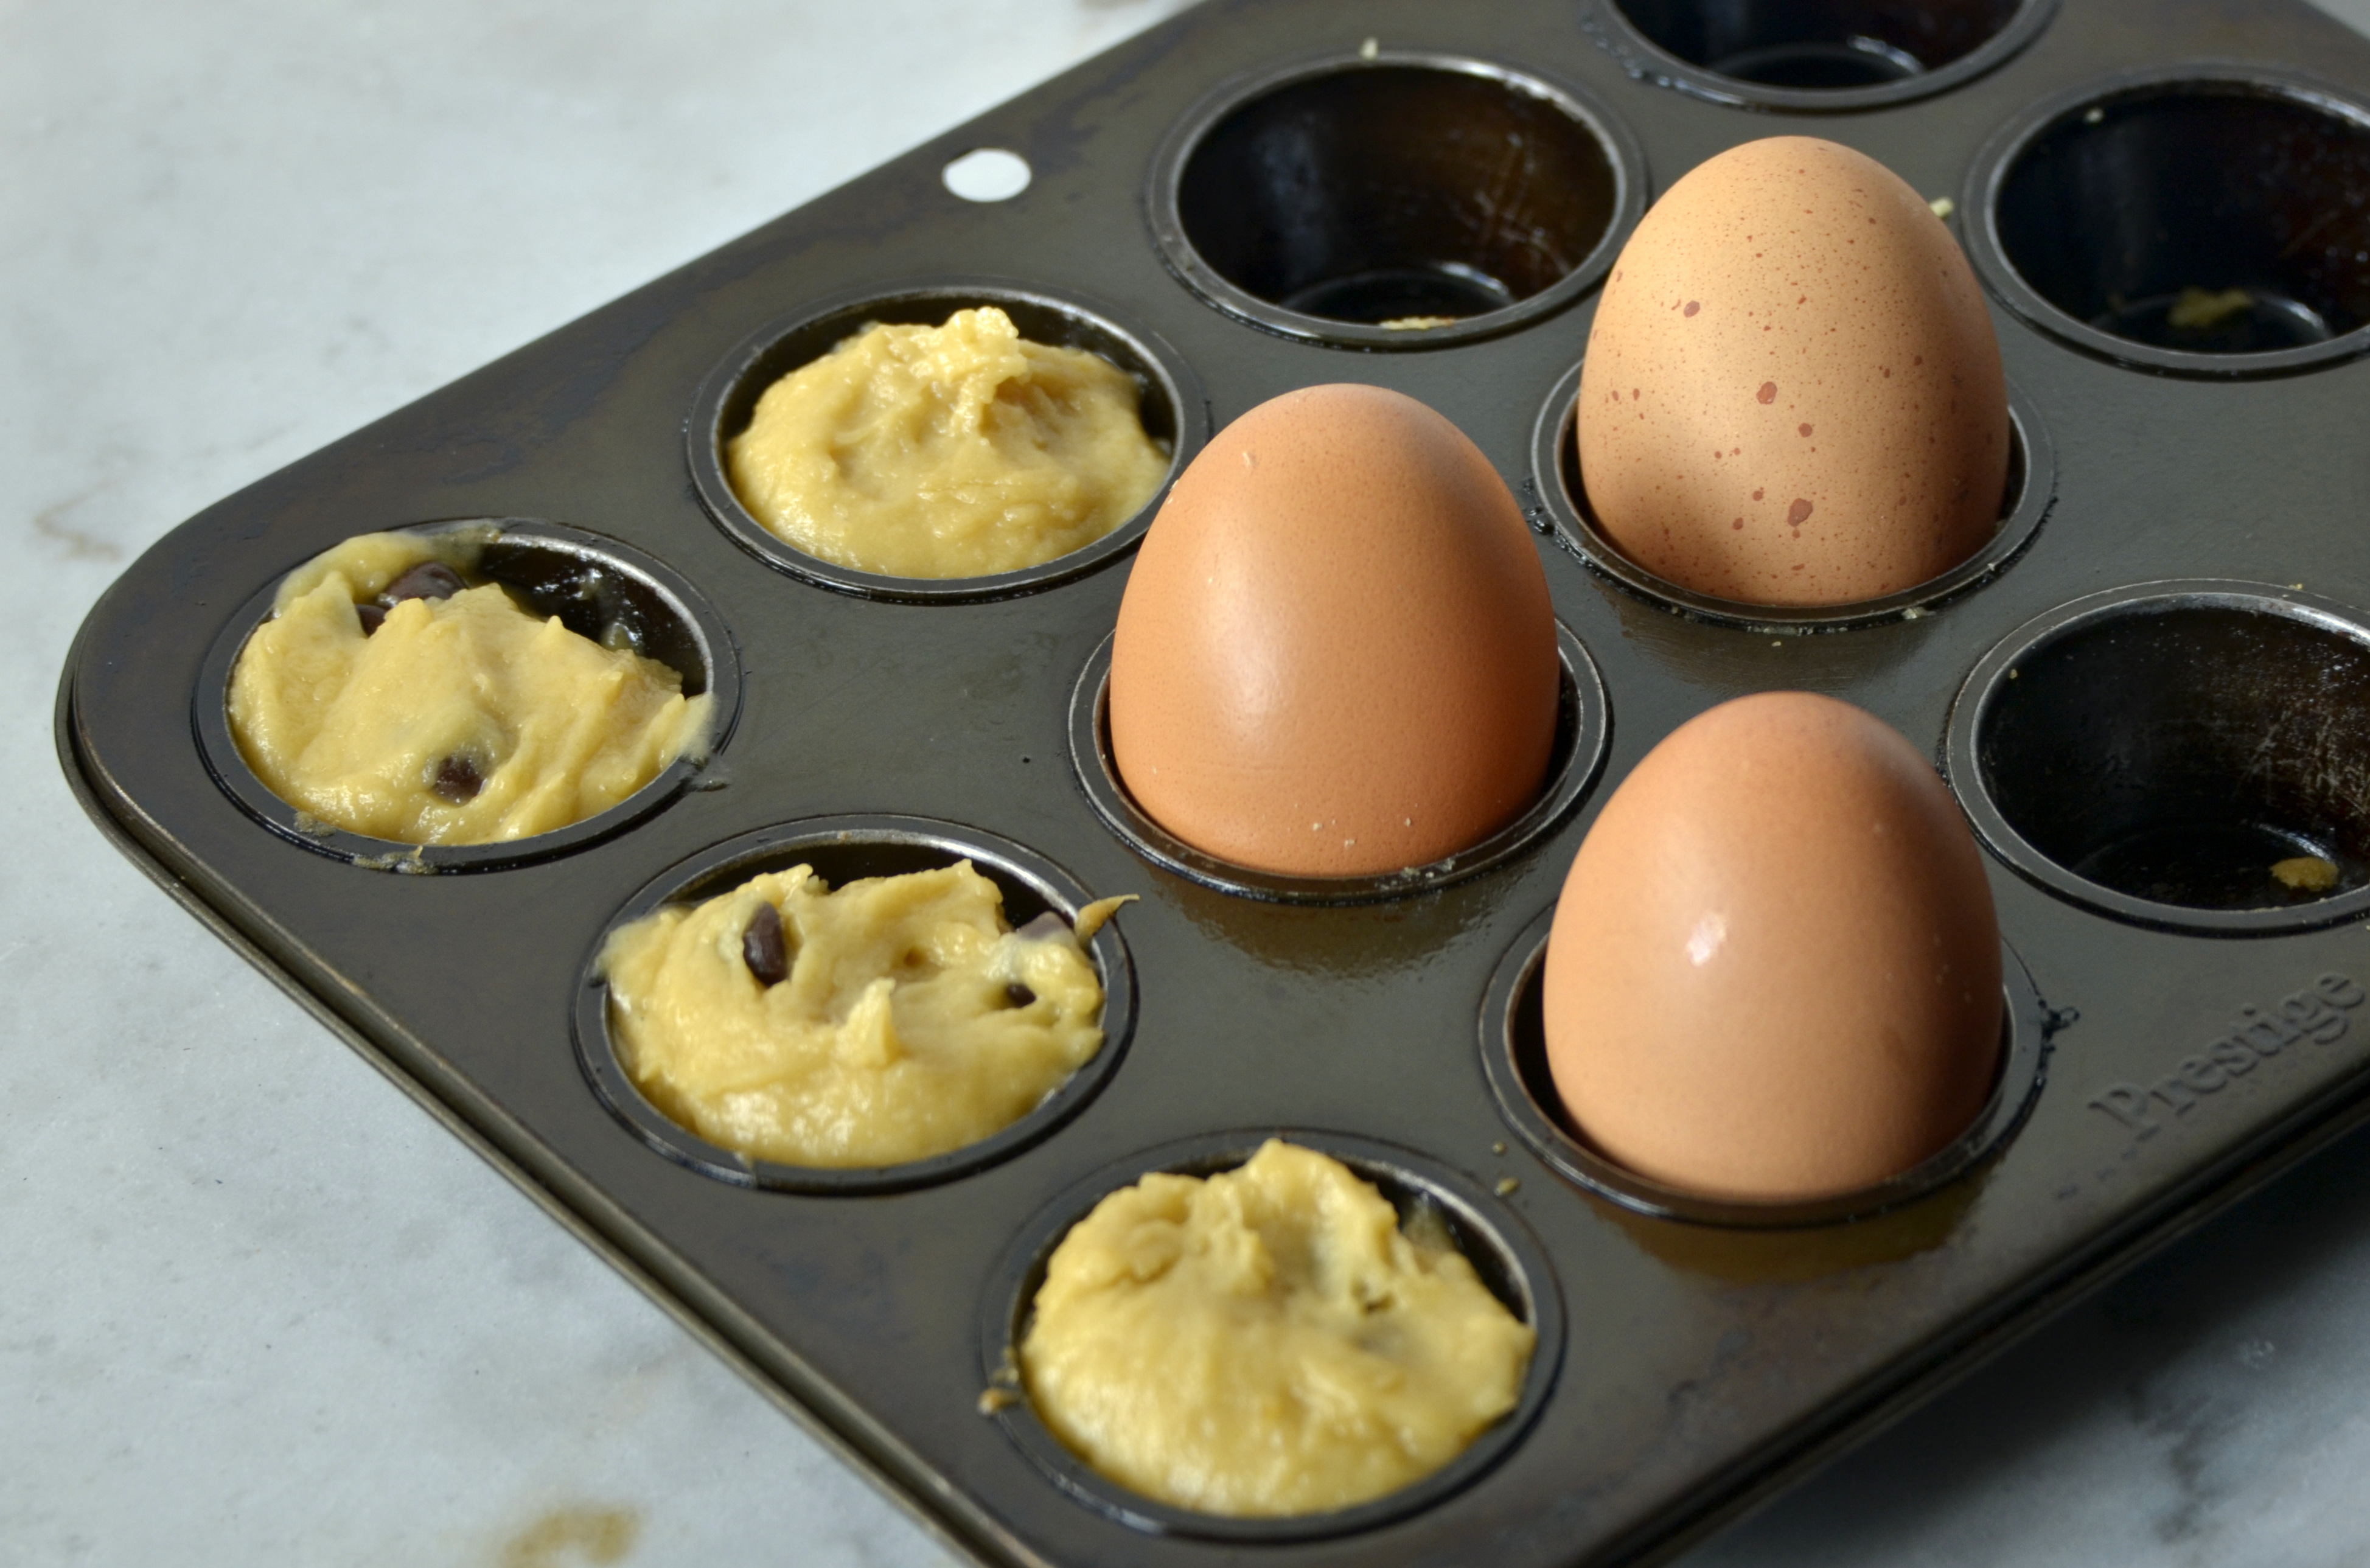 Make use of extra space by cooking eggs at the same time as the last few blondie bites